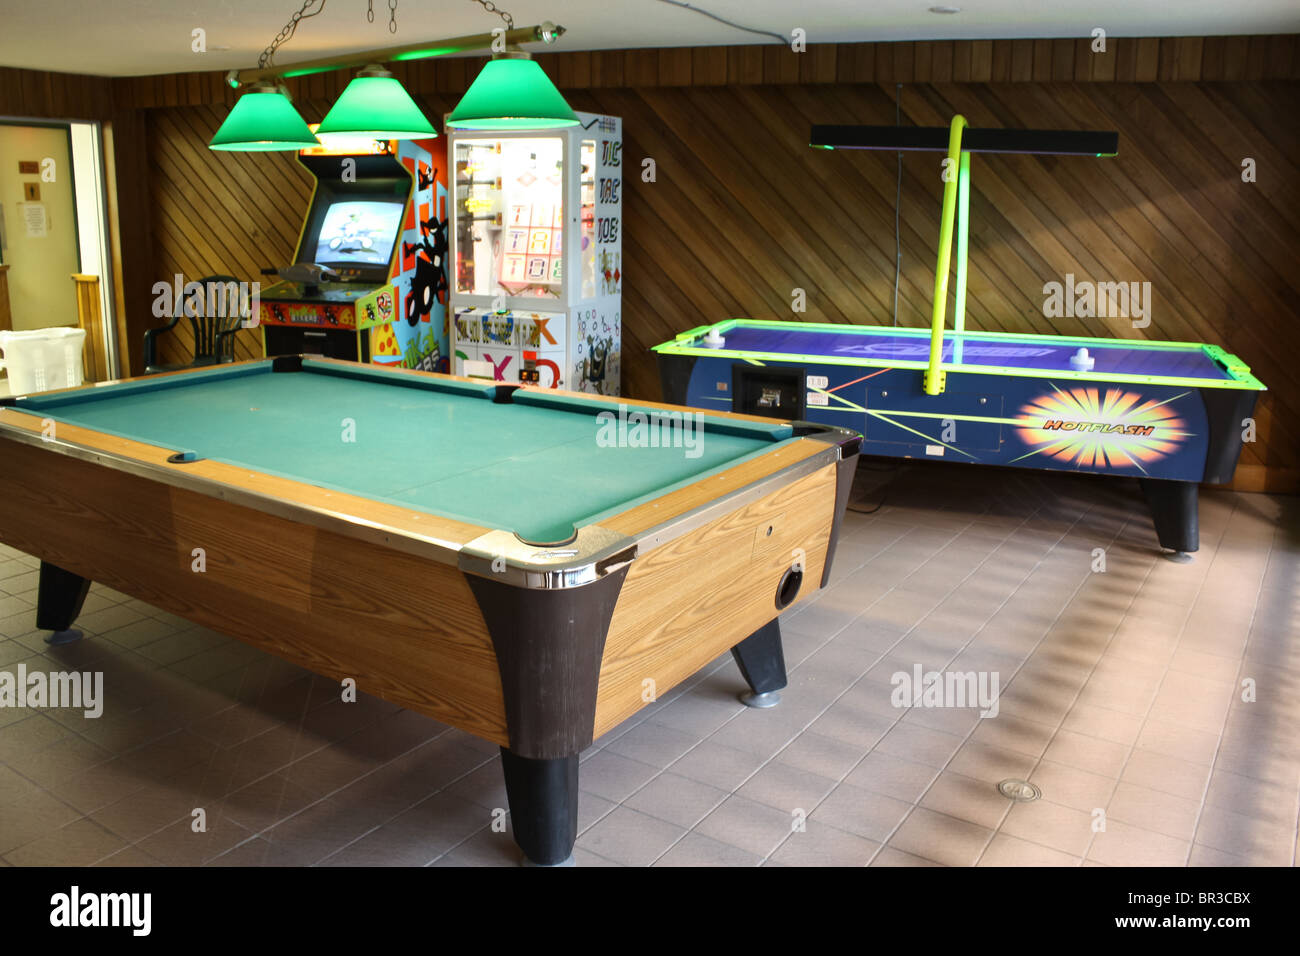 game room billiard air hockey table arcade game - Stock Image